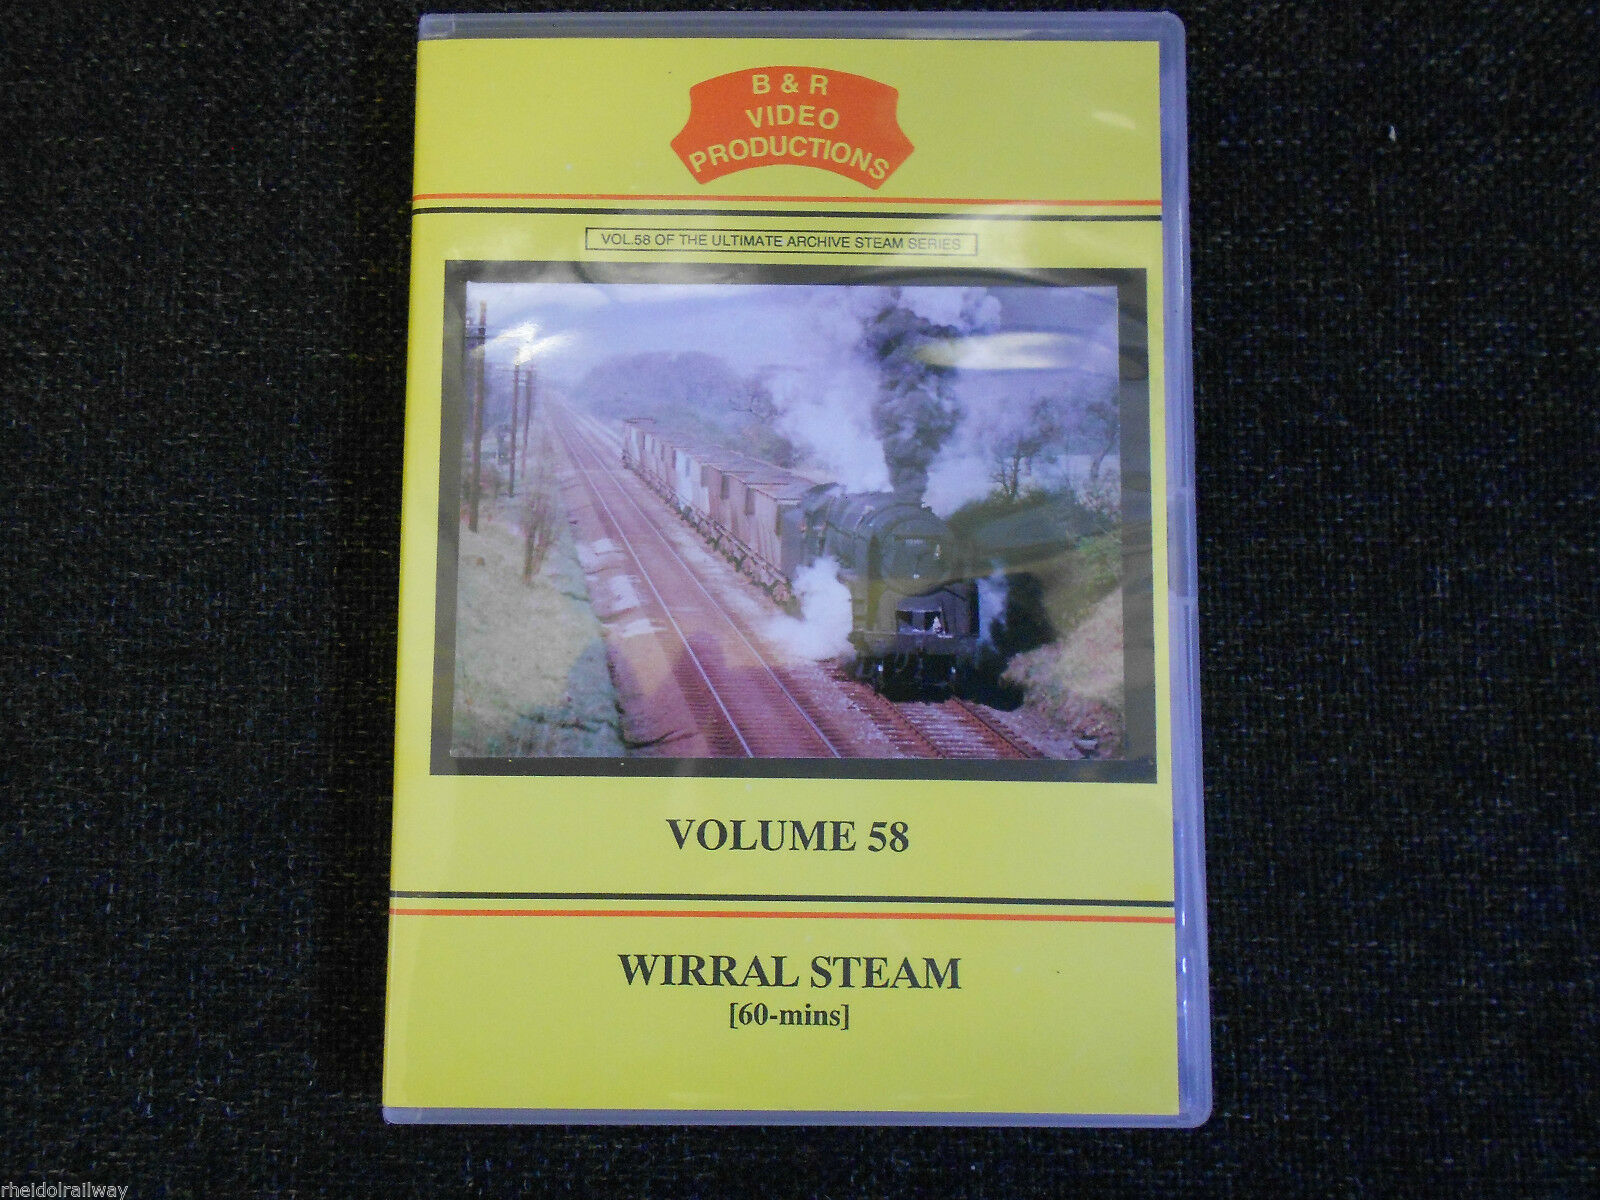 Chester, Birkenhead, Ellesmere Port, Bidston, Wirral Steam B&R Vol 58 DVD - The Vale of Rheidol Railway